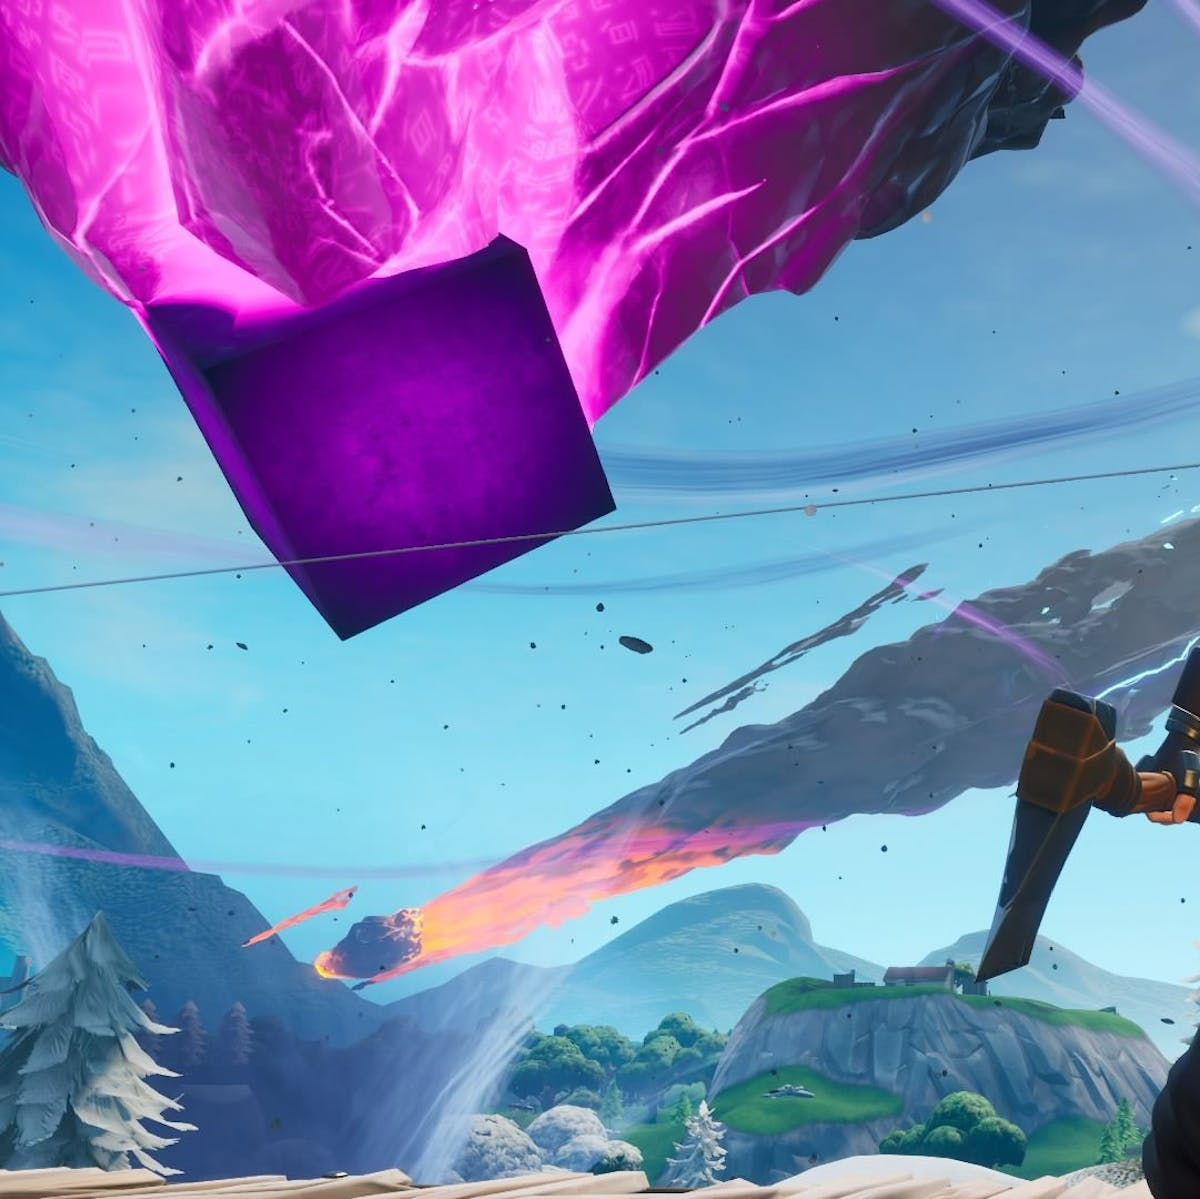 'Fortnite' Season 11 leaks reveal a map-changing apocalypse